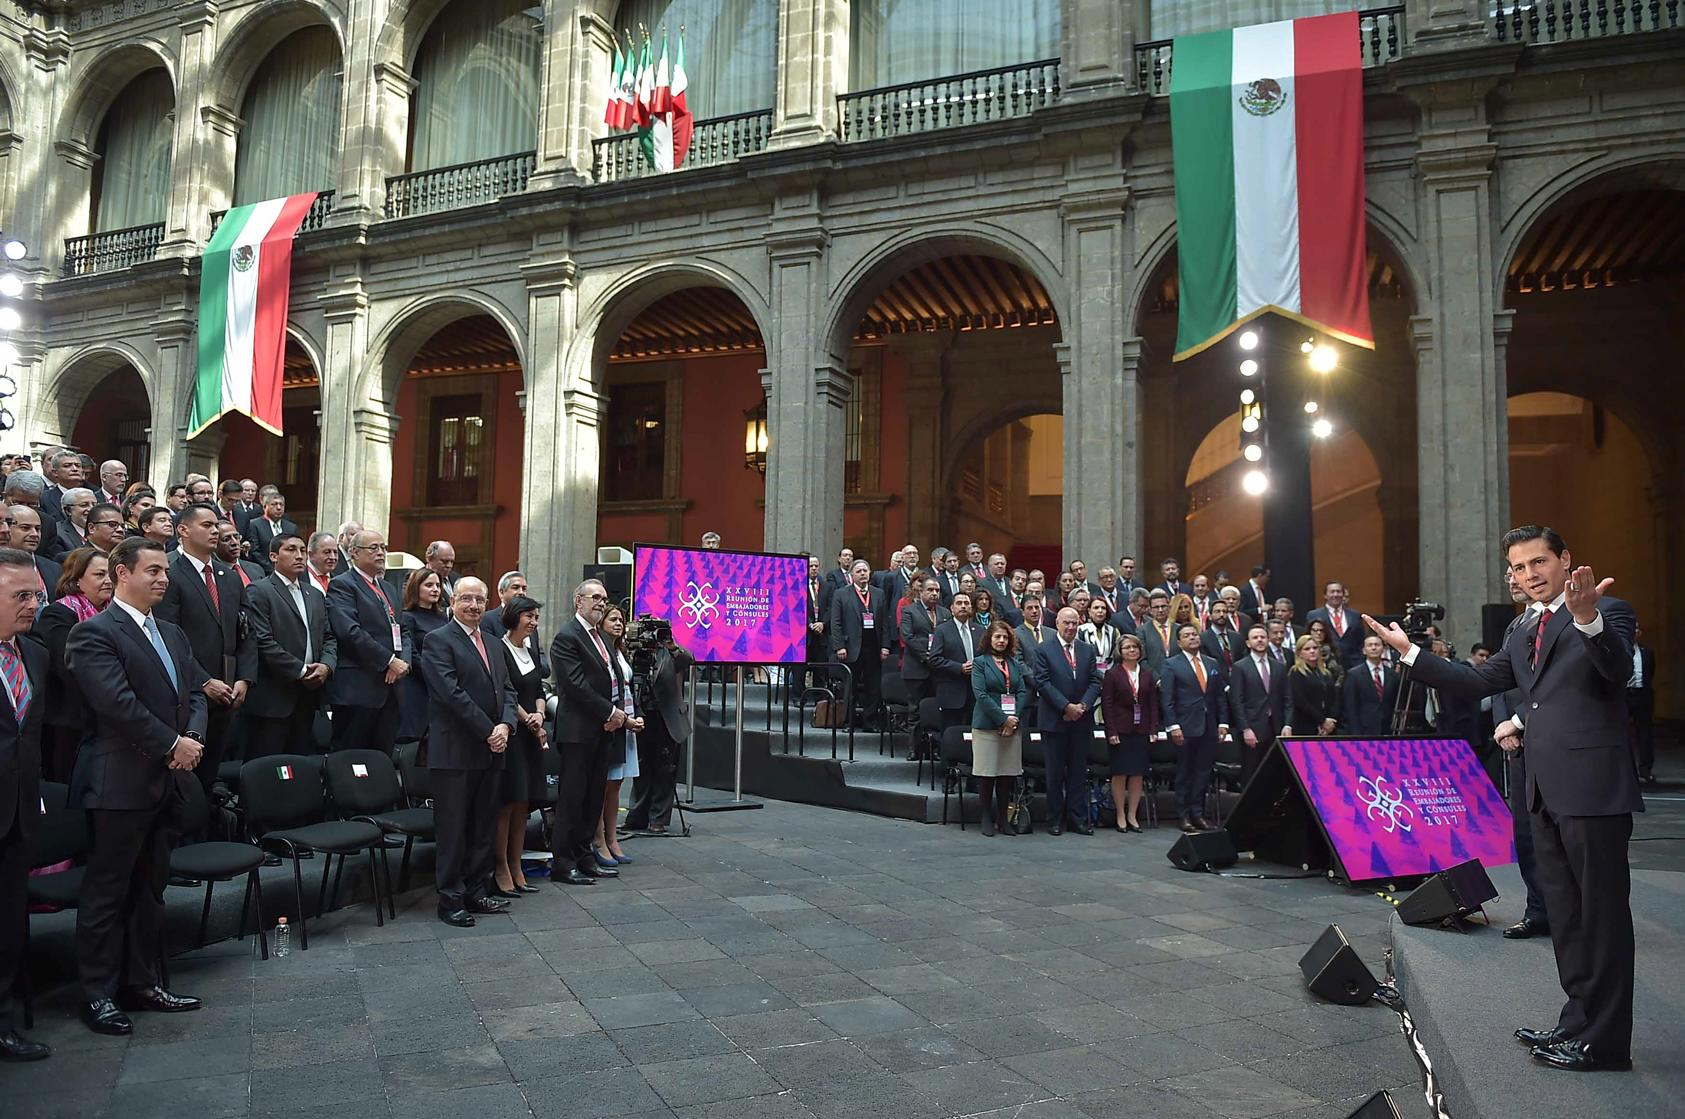 The president led the 28th Meeting of Mexican Ambassadors and Consuls.